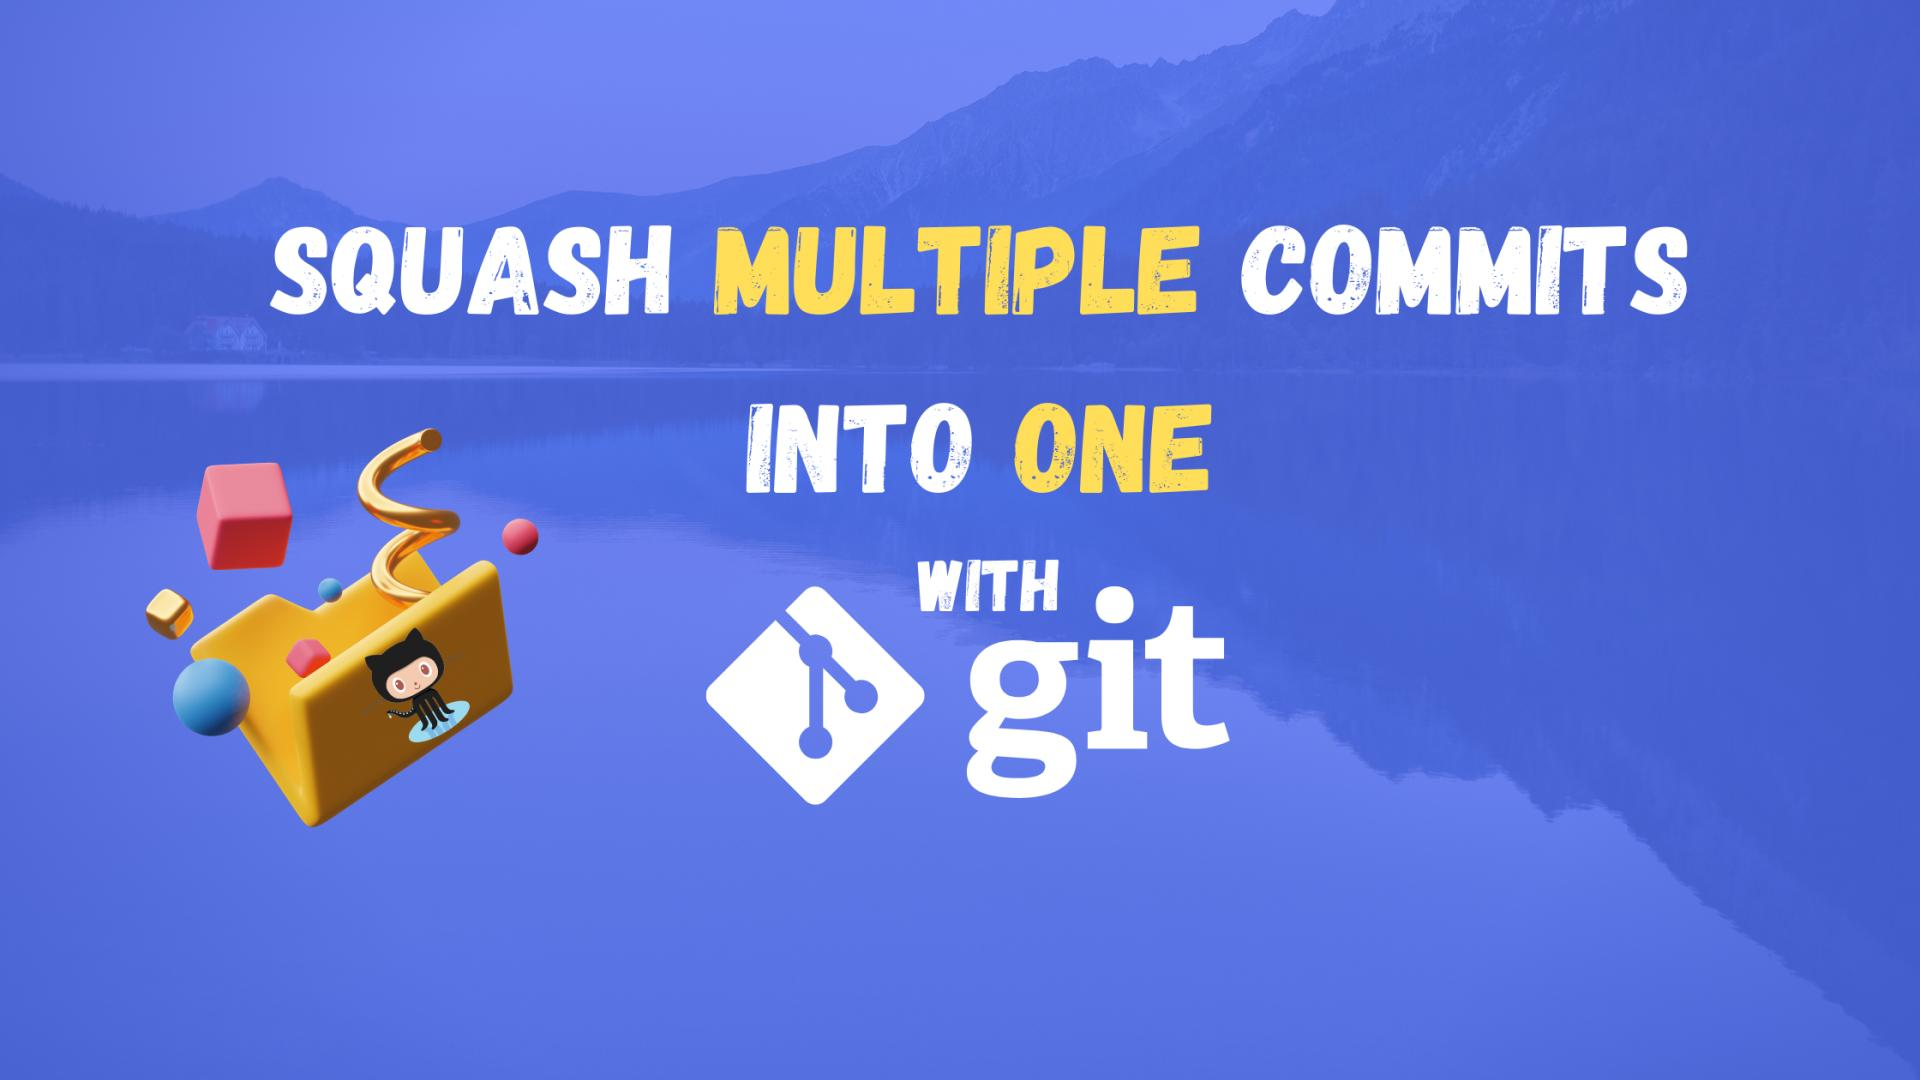 How to squash multiple commits into one with Git?